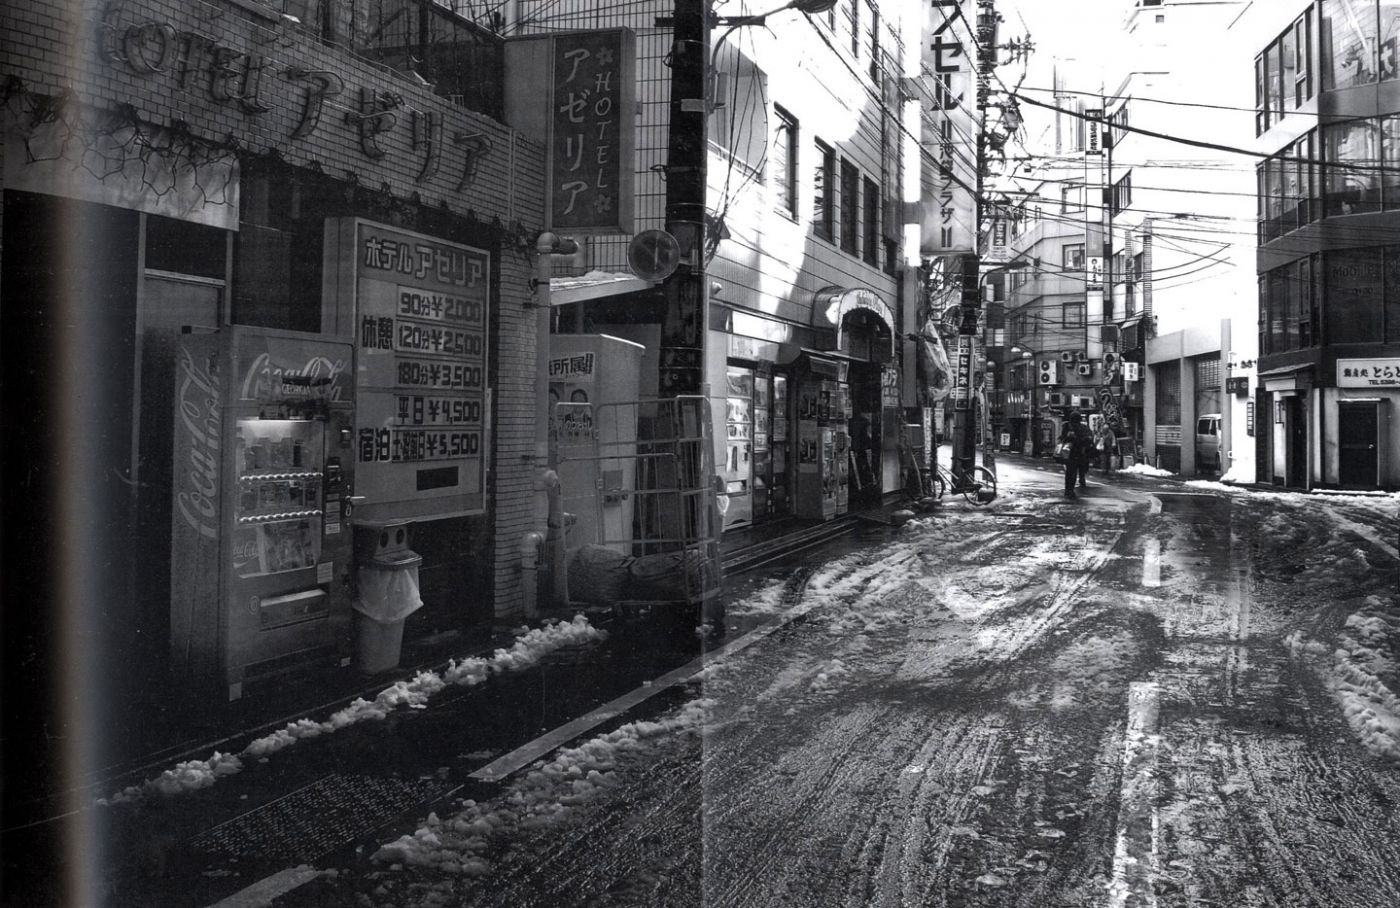 Daido Moriyama: Printing Show (2011) - TKY, Limited Edition (with Screenprinted Cover) [SIGNED]